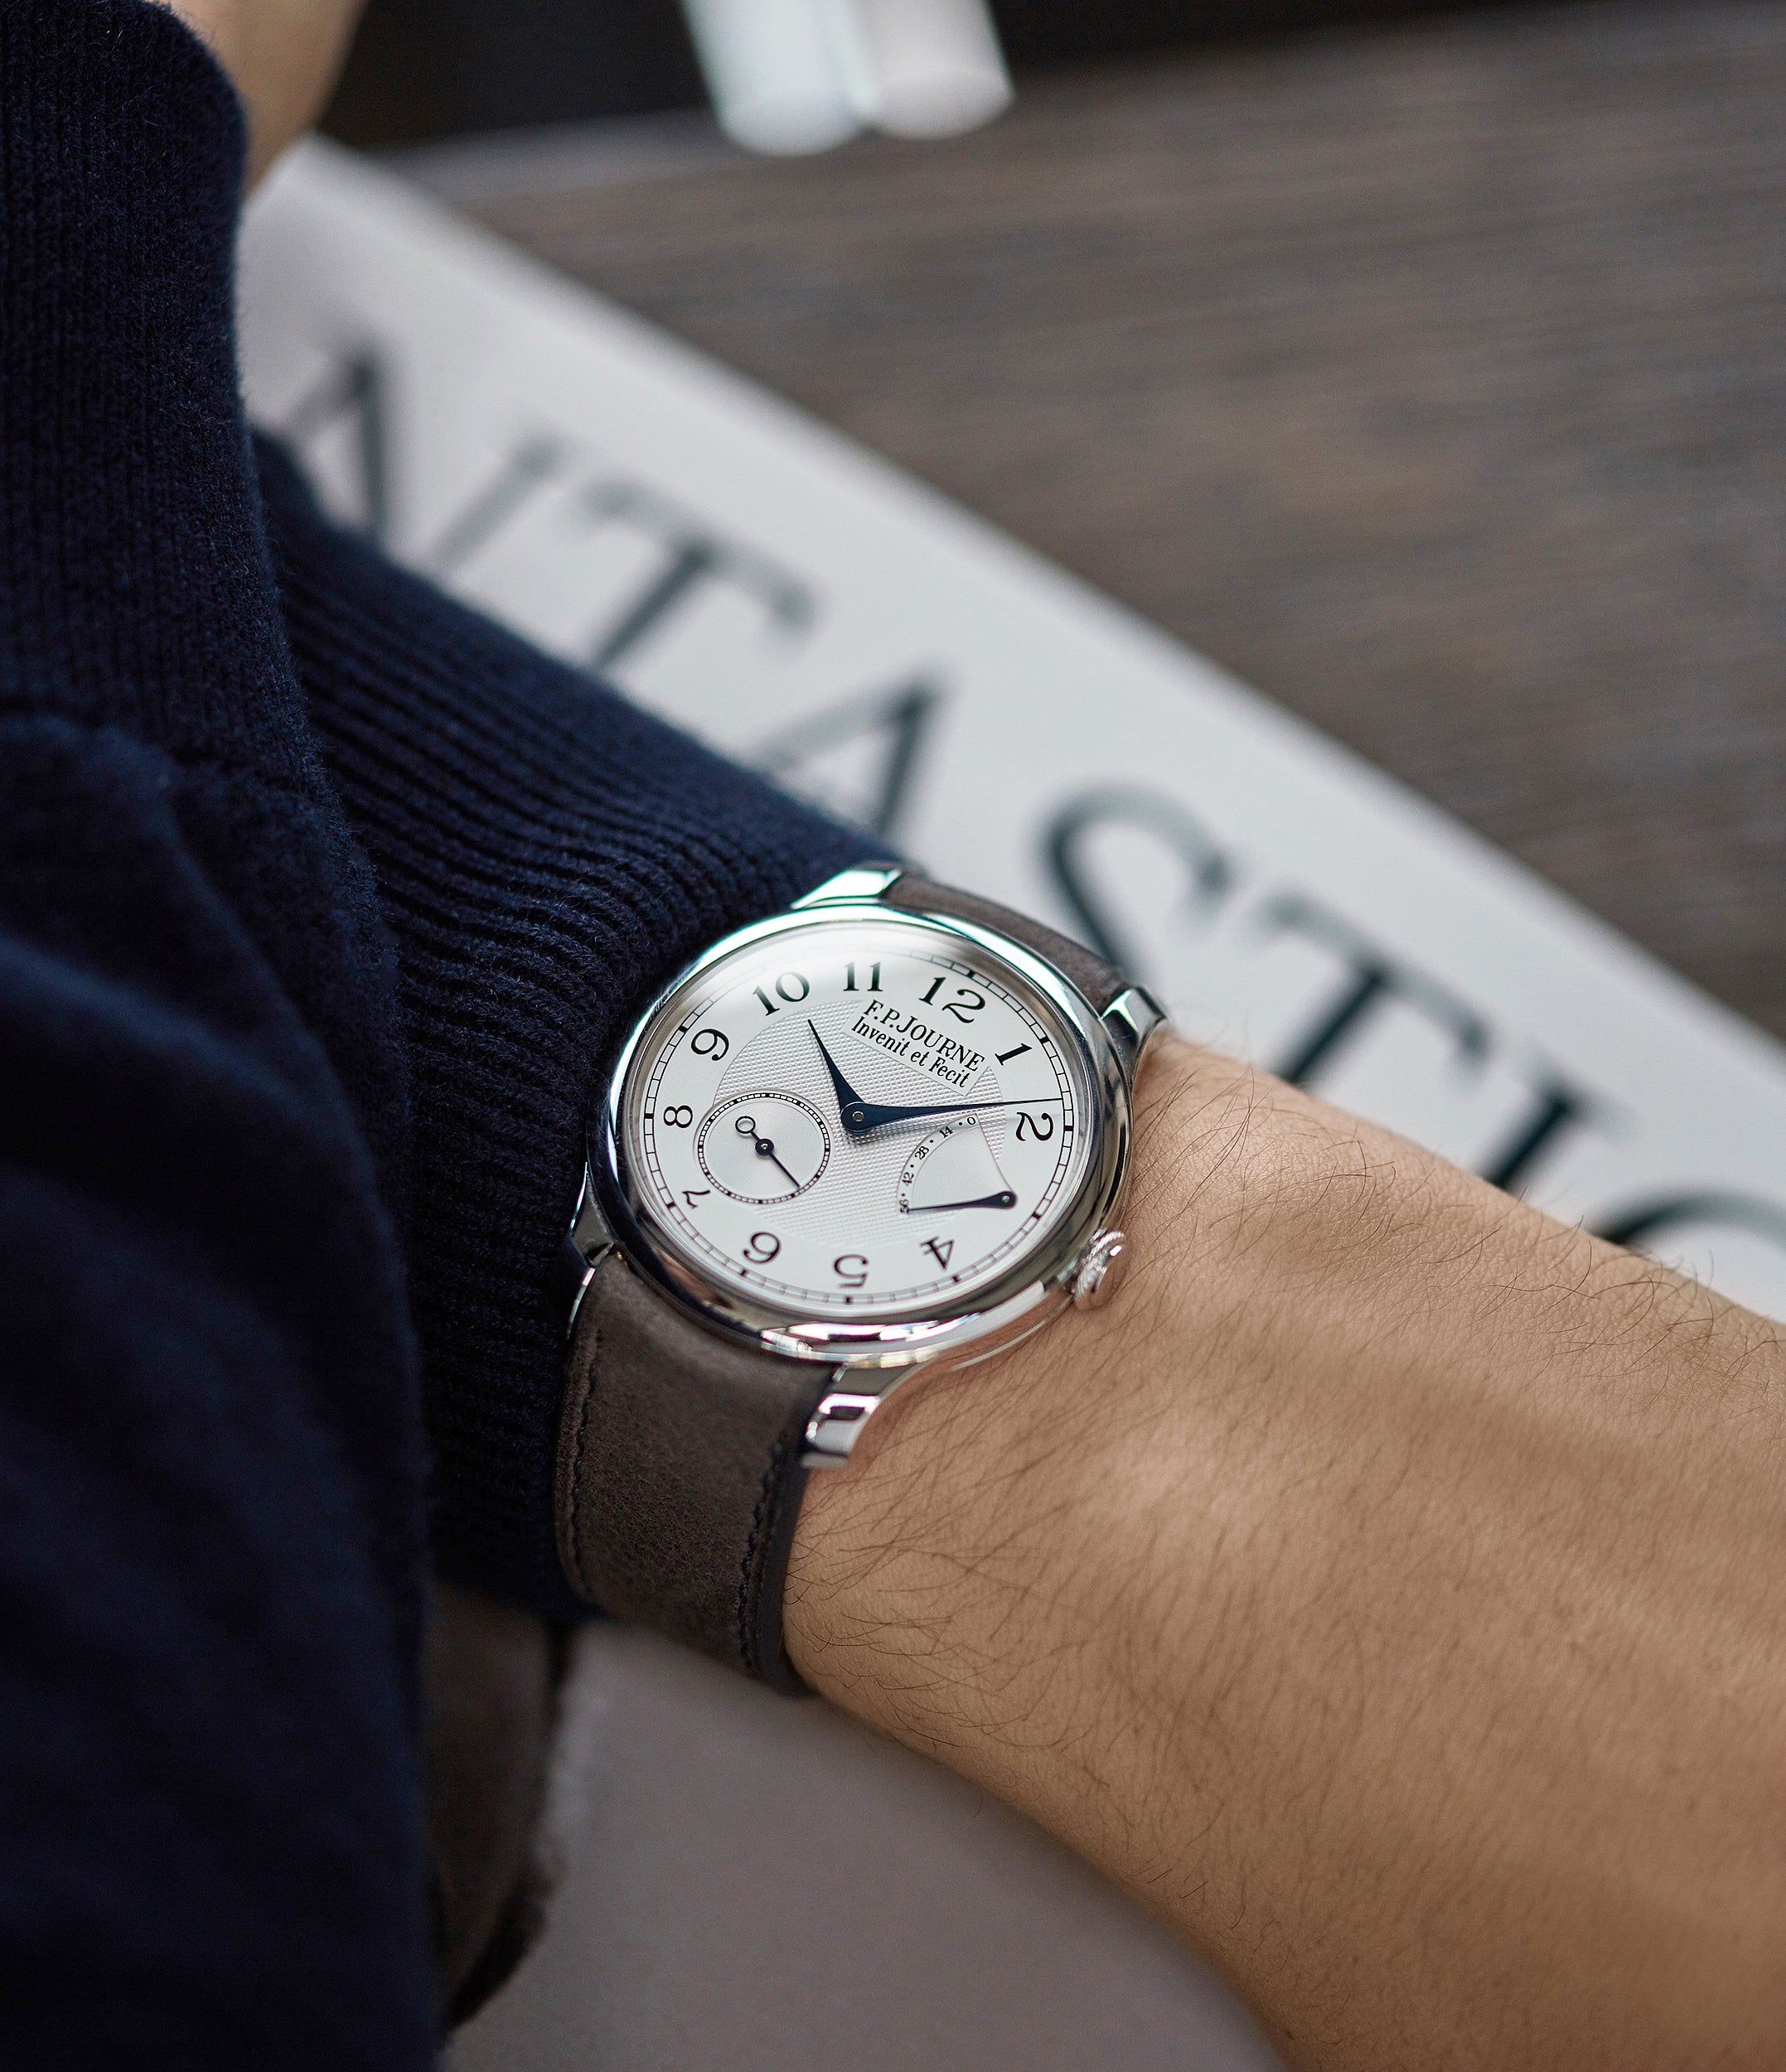 time-only Journe Chronometre Souverain platinum 40mm Cal. 1304 manual-winding silver dial time-only dress watch for sale online at A Collected Man London UK specialist independent watchmakers